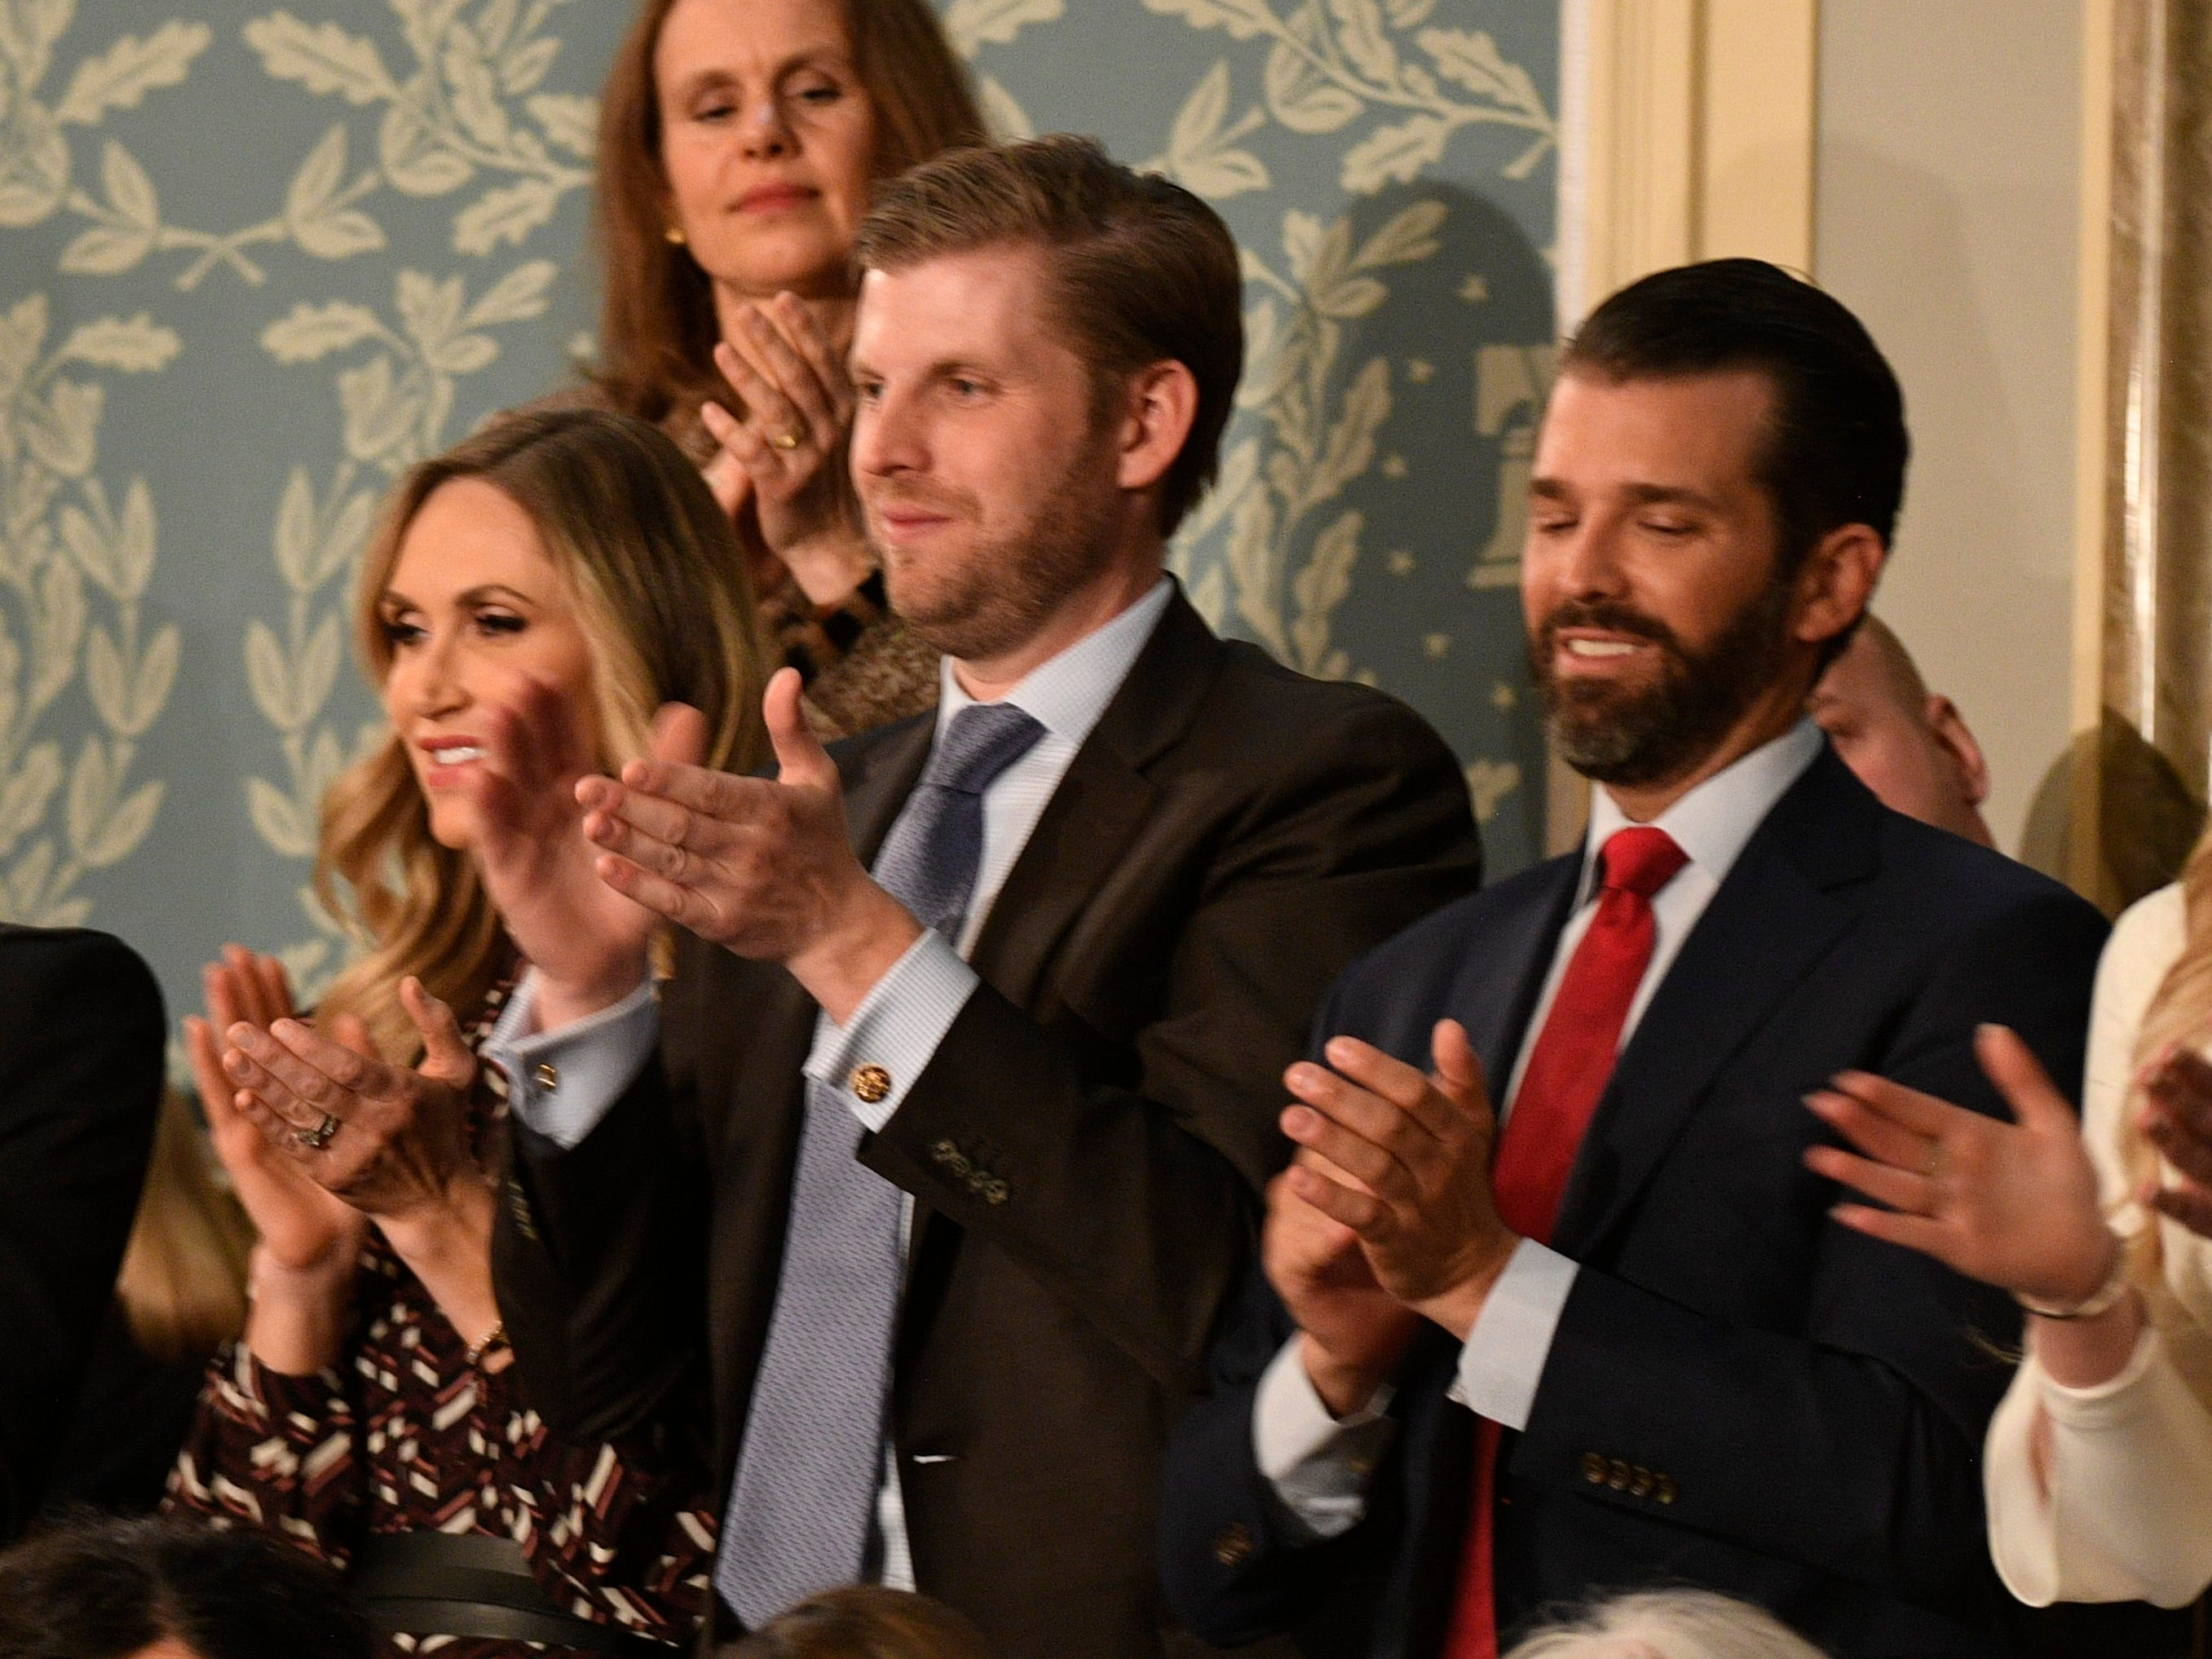 Members of the Trump family applaud as President Donald Trump delivers the State of the Union address.